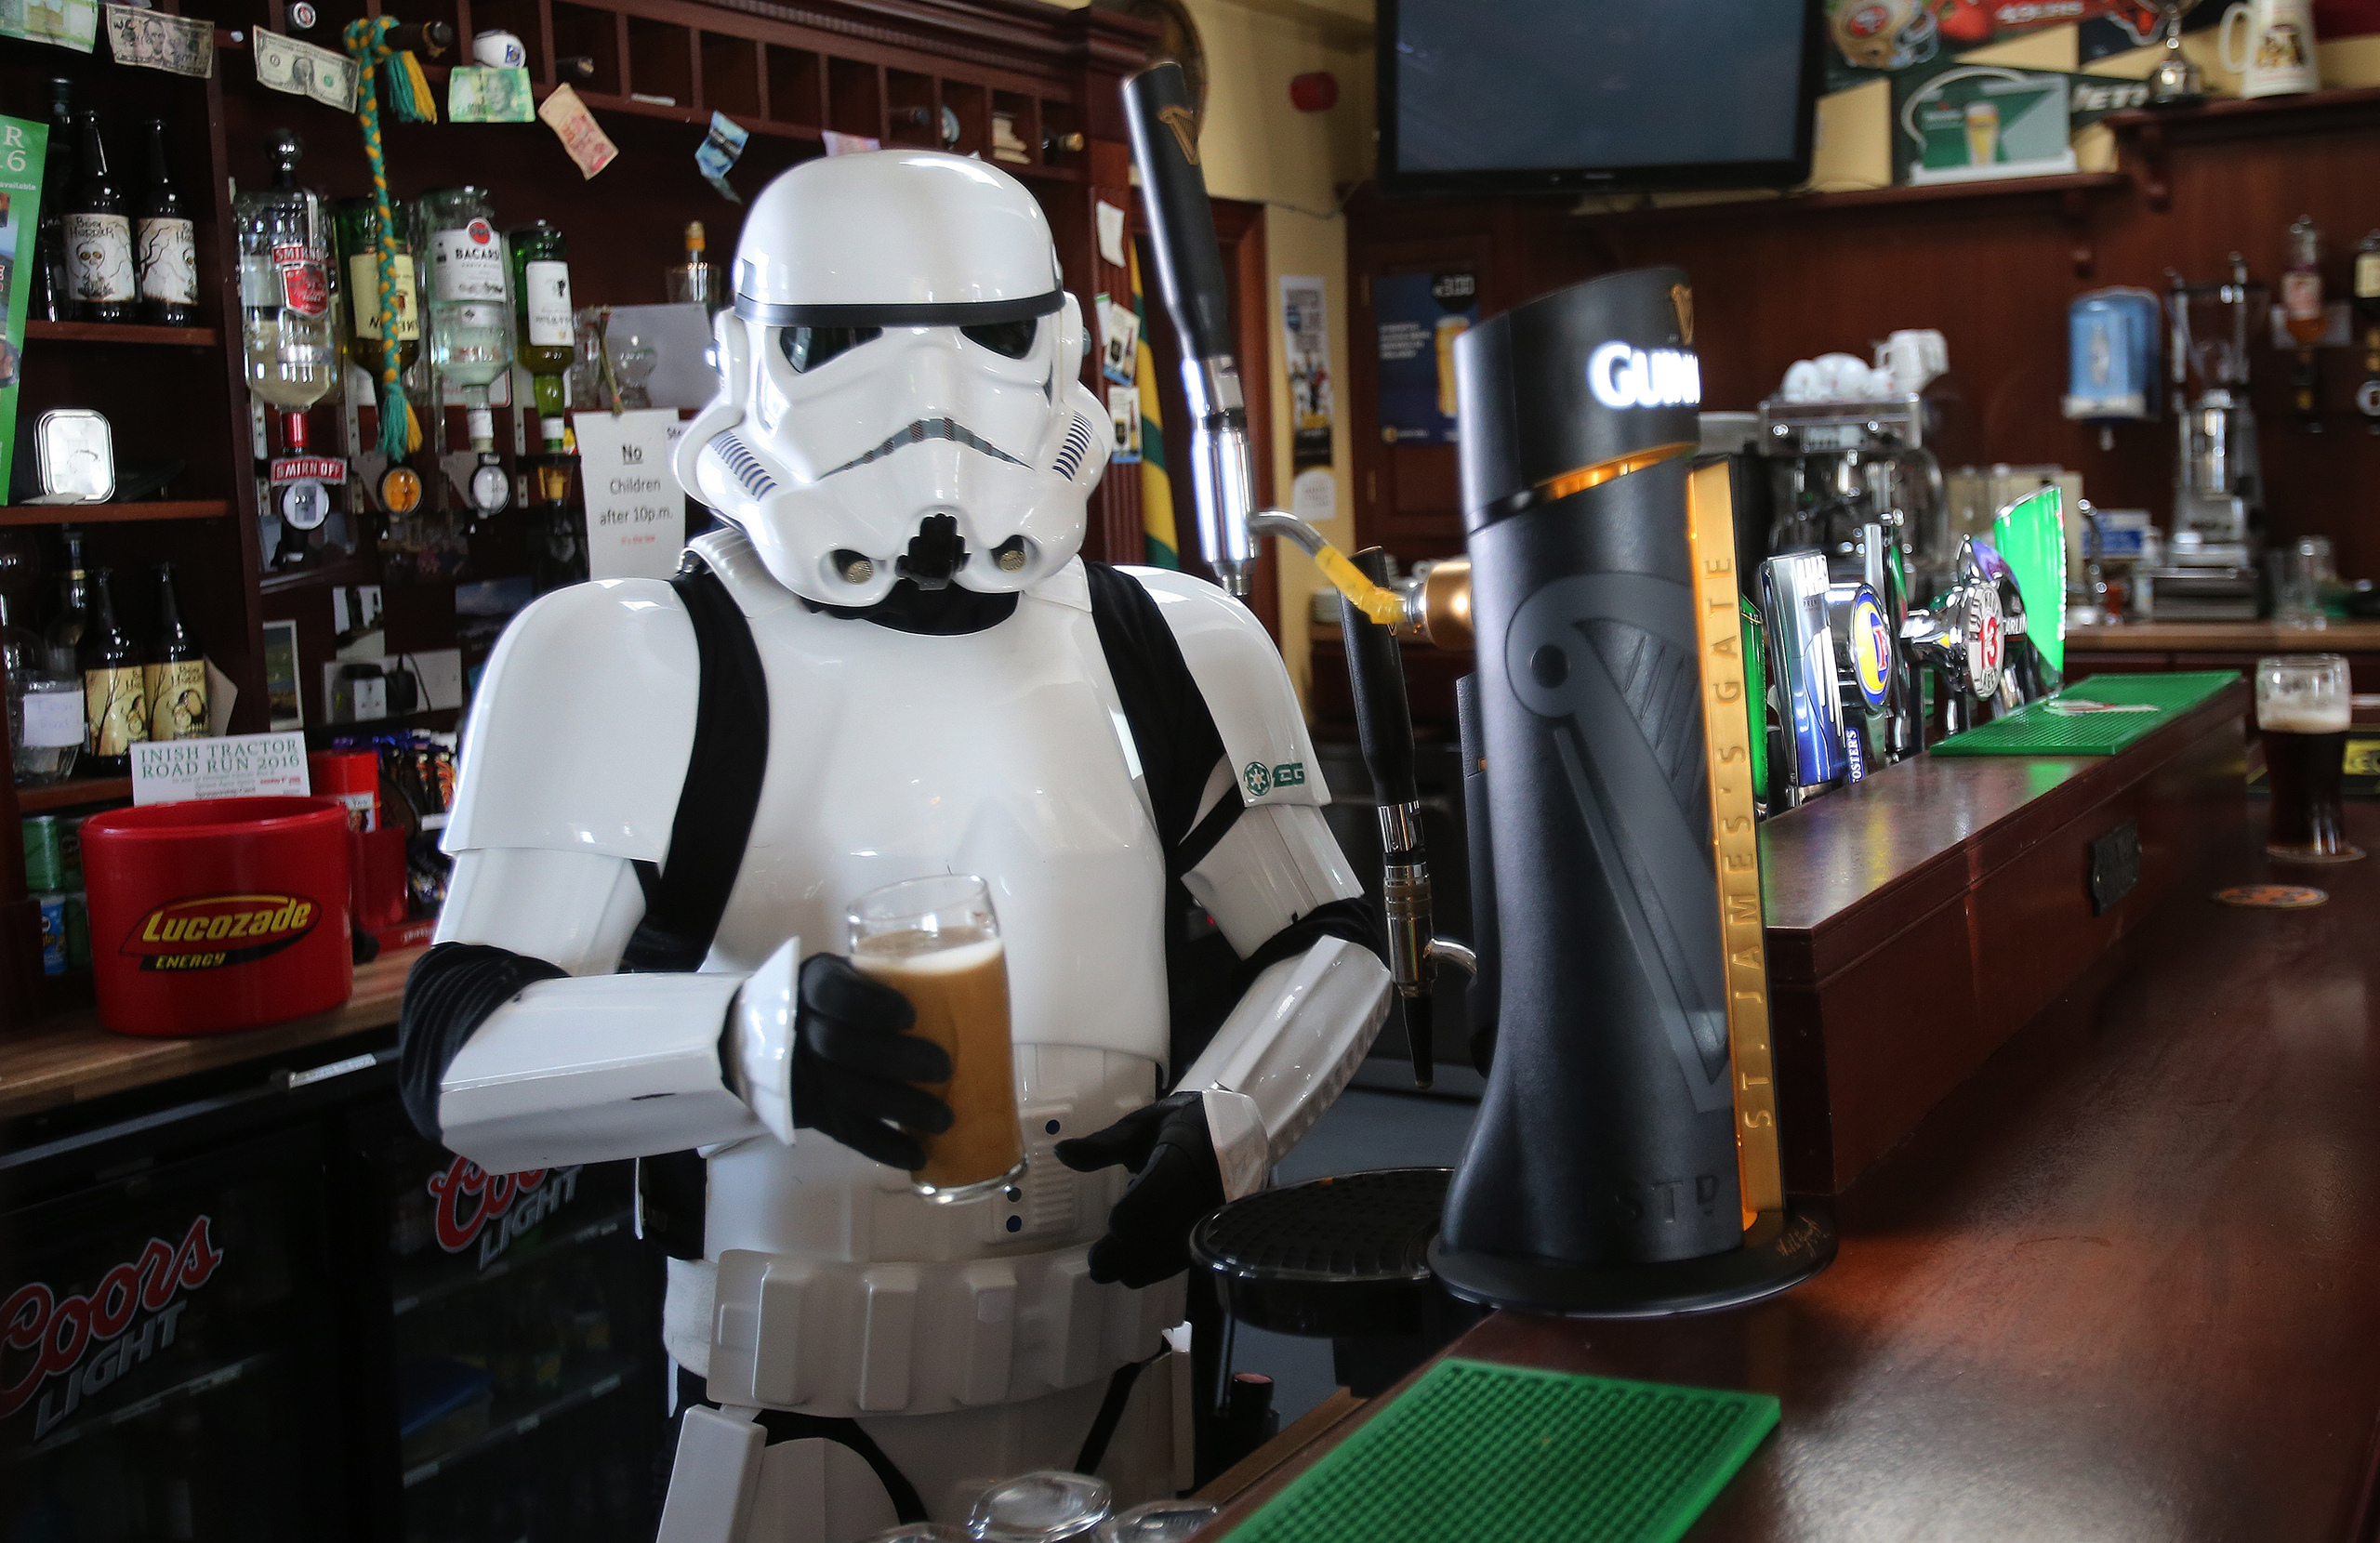 JJ McGettigan from the Emerald Garrison, a star Wars costuming club, in Farrens Bar in Malin Head, Co Donegal Ireland, as filming for the next Star Wars movie will take place there, May 12, 2016.